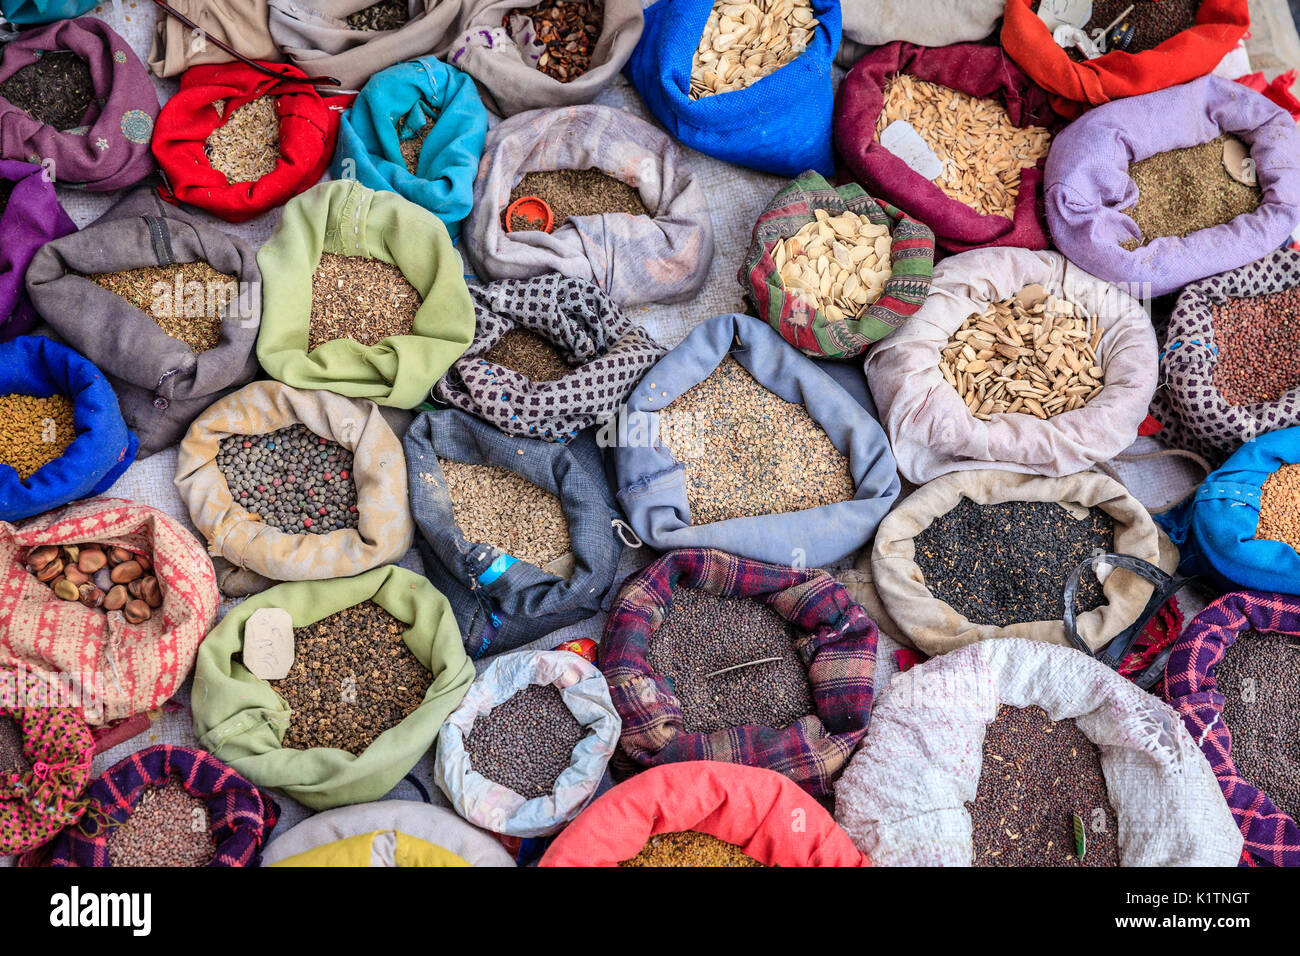 Bags with spices at a street market in Leh, Ladakh district of Kashmir, India - Stock Image